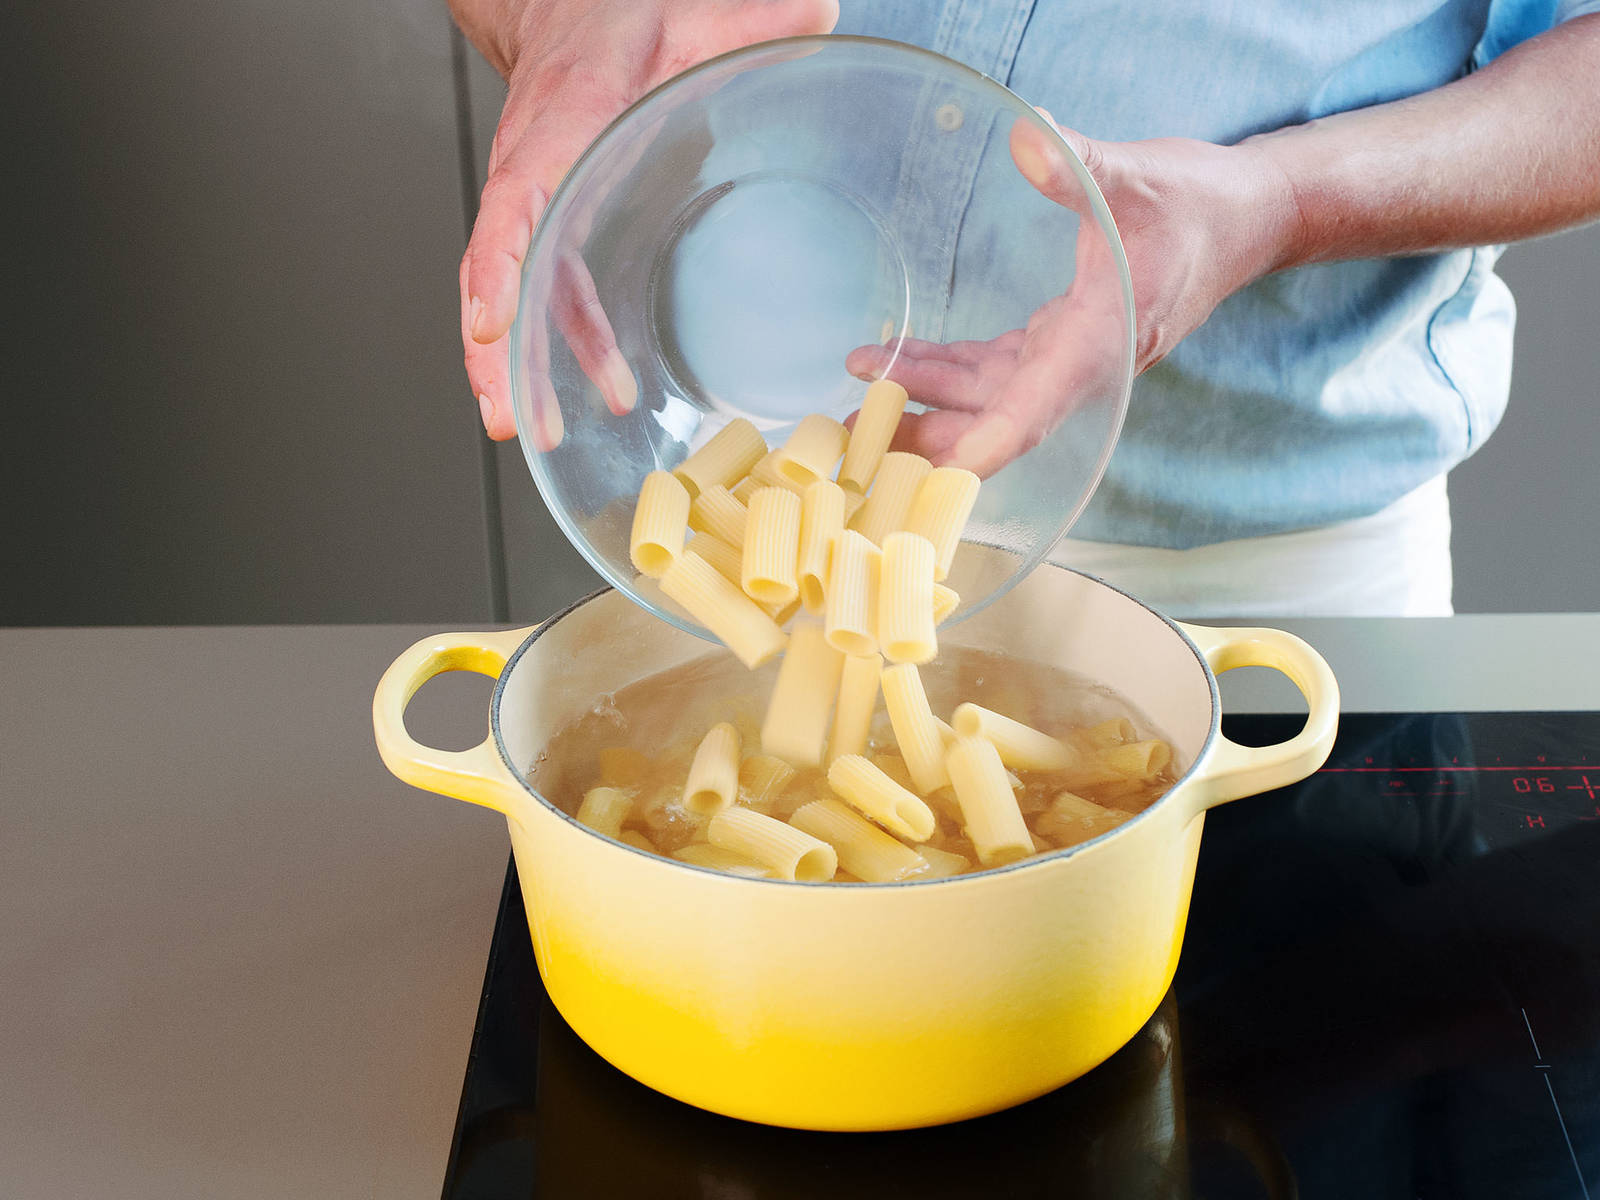 Fill a large saucepan halfway with water; bring to a boil over high heat, then add the salt. Add rigatoni and cook, according to package instructions, for approx. 10 - 12 min. until al dente. Drain pasta, reserving some of the pasta water, and set aside.